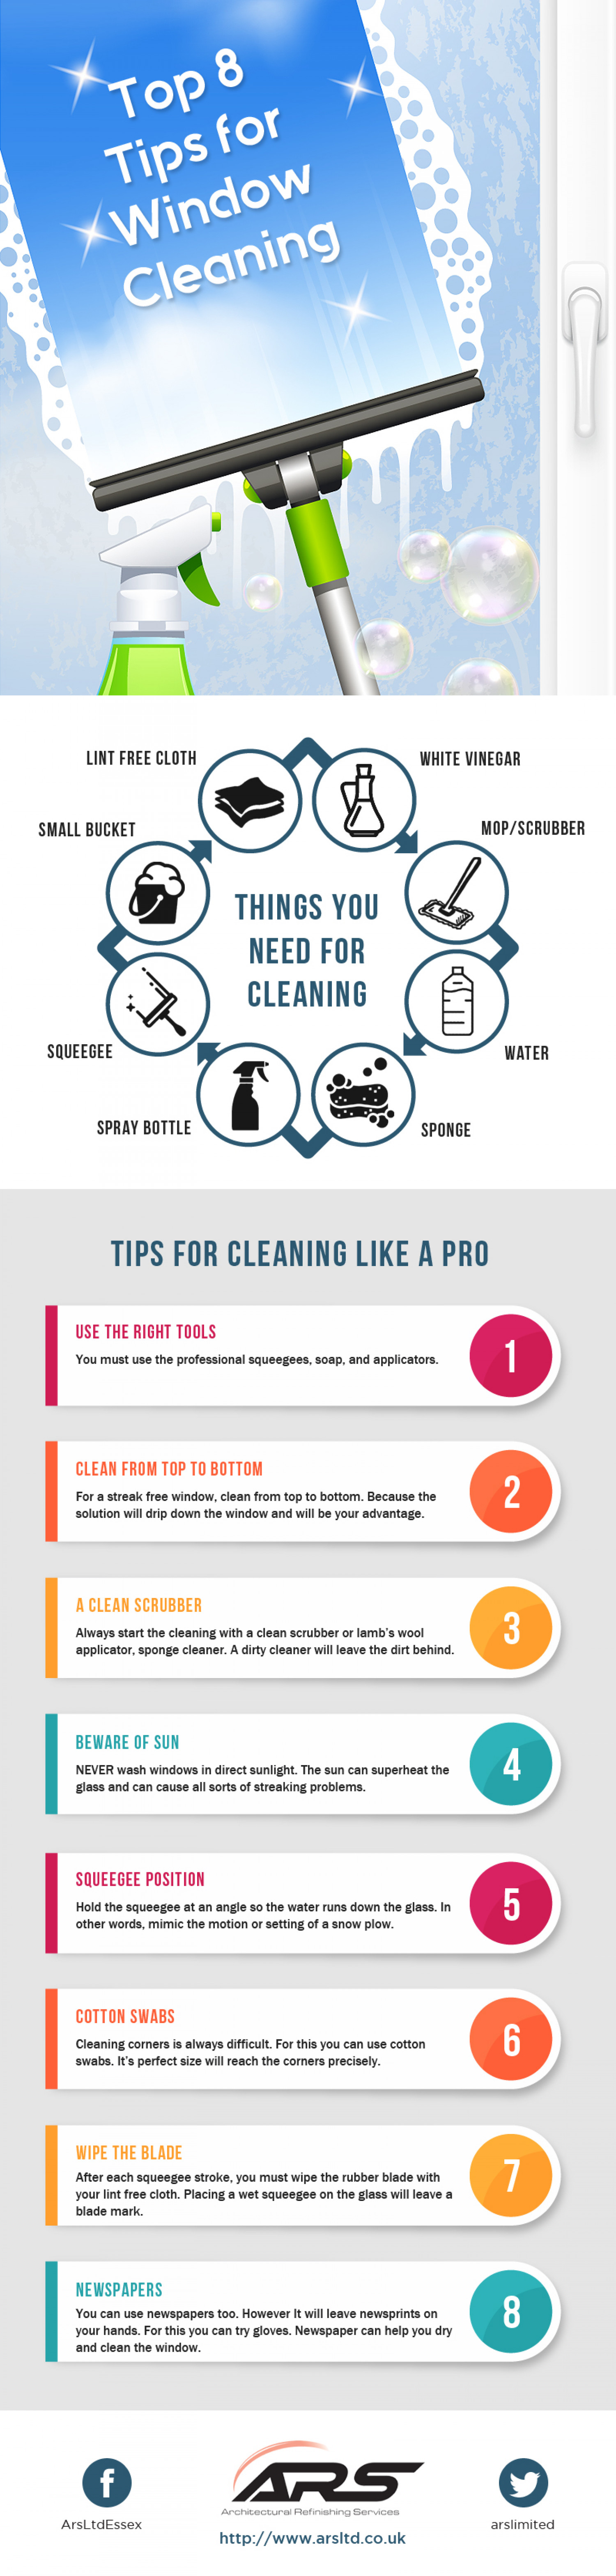 8 Tips for Window Cleaning Infographic